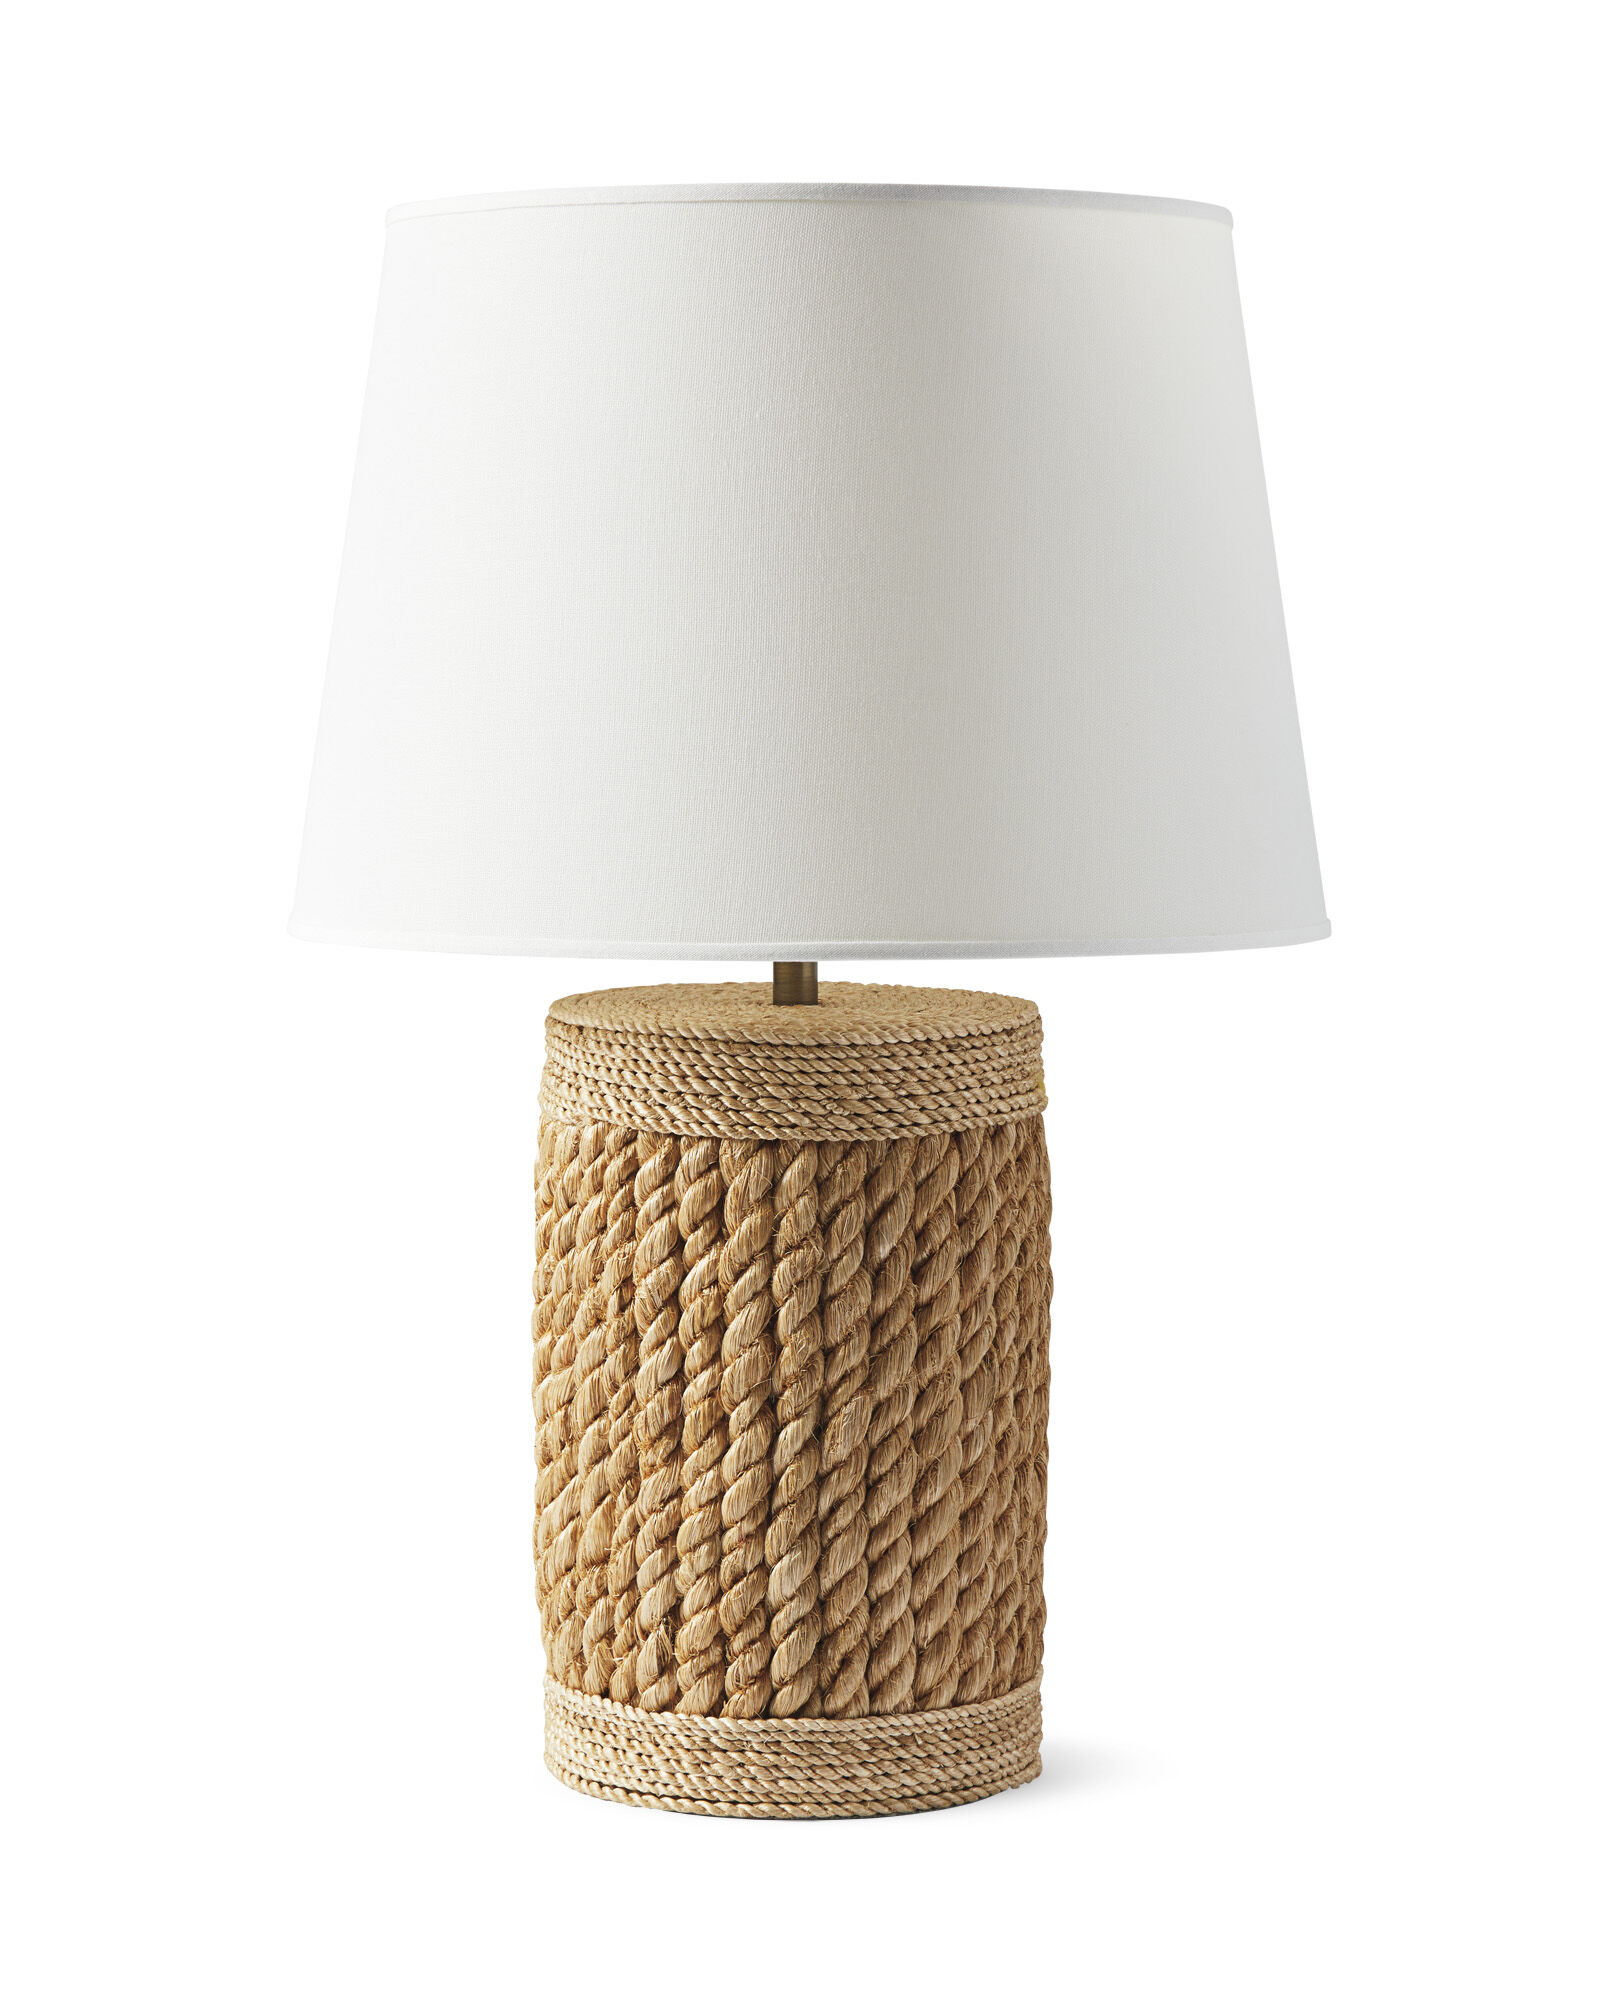 Digby Table Lamp